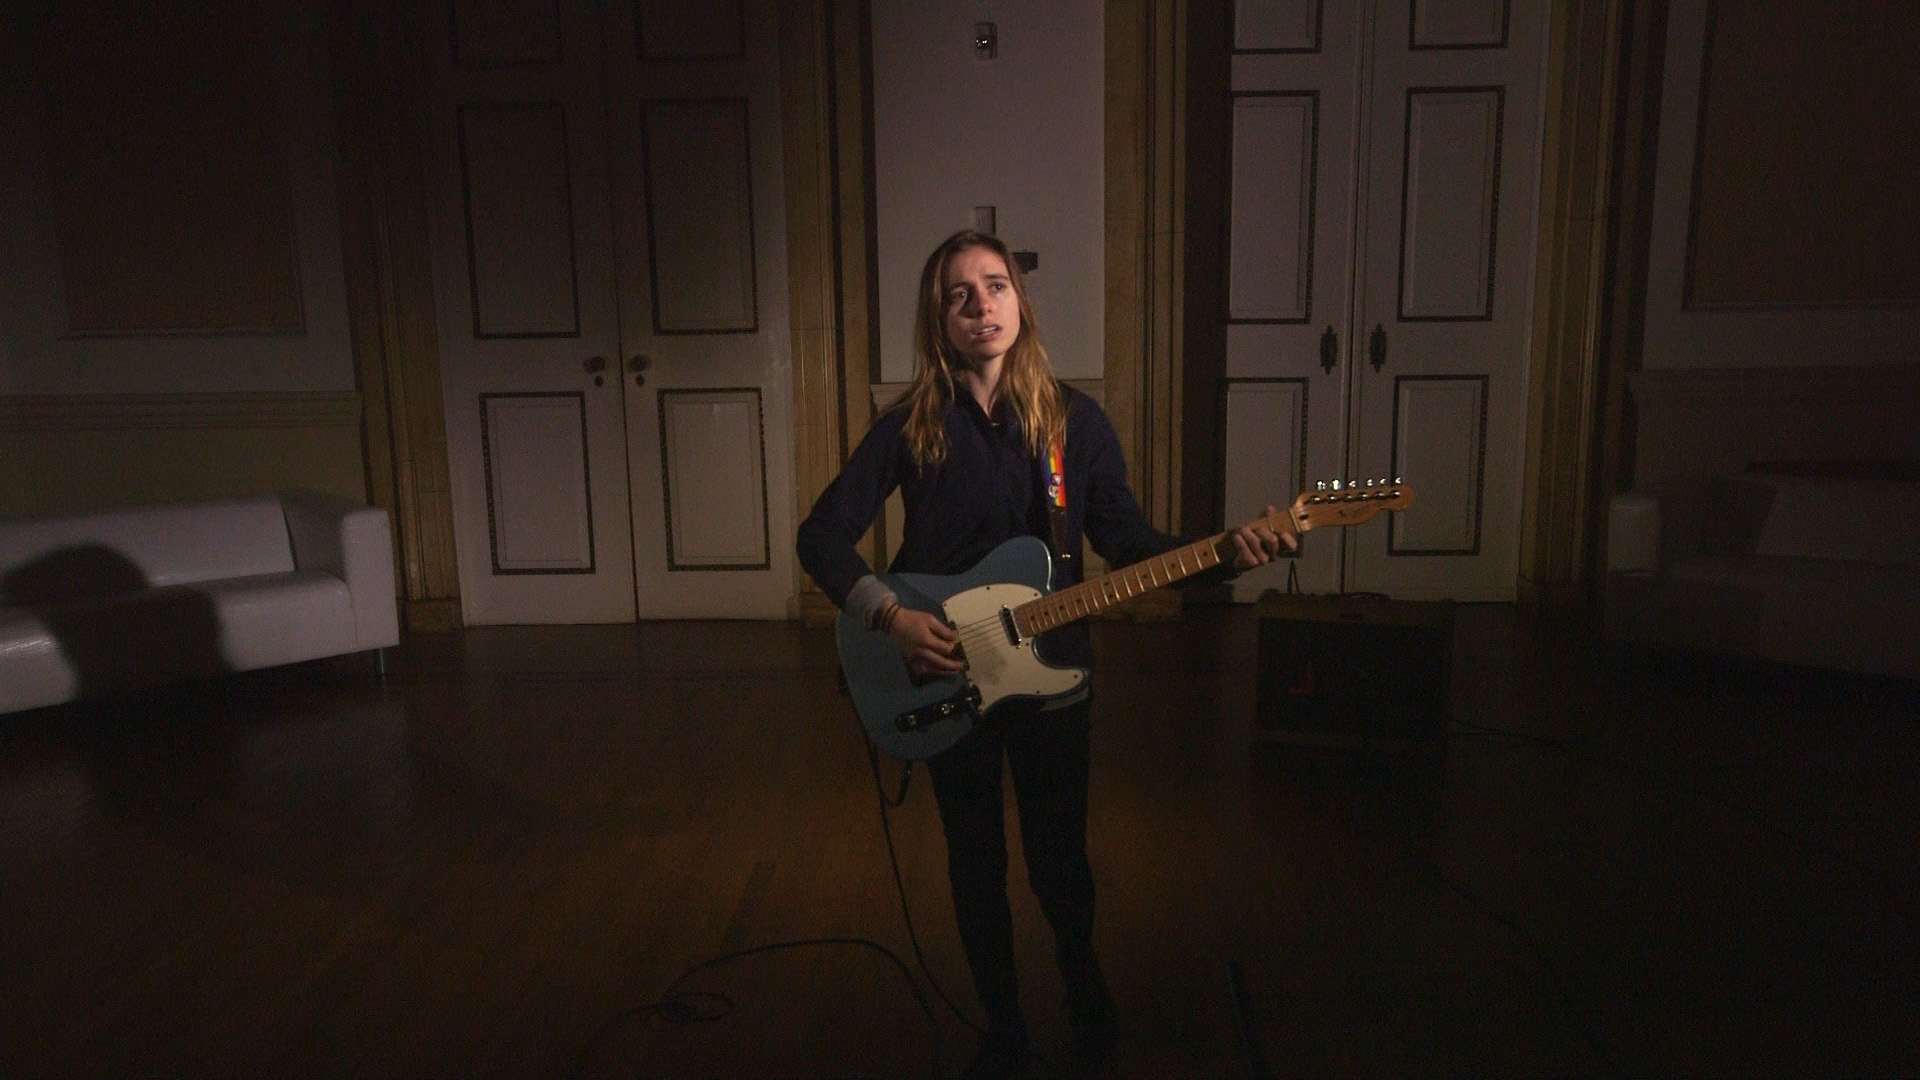 An Old Head On Young Shoulders - Sometimes, great wisdom comes from the mouths of babes. 20-something-year-old singer-songwriter Julien Baker lives and reflects deeply.Season 3, Episode 5